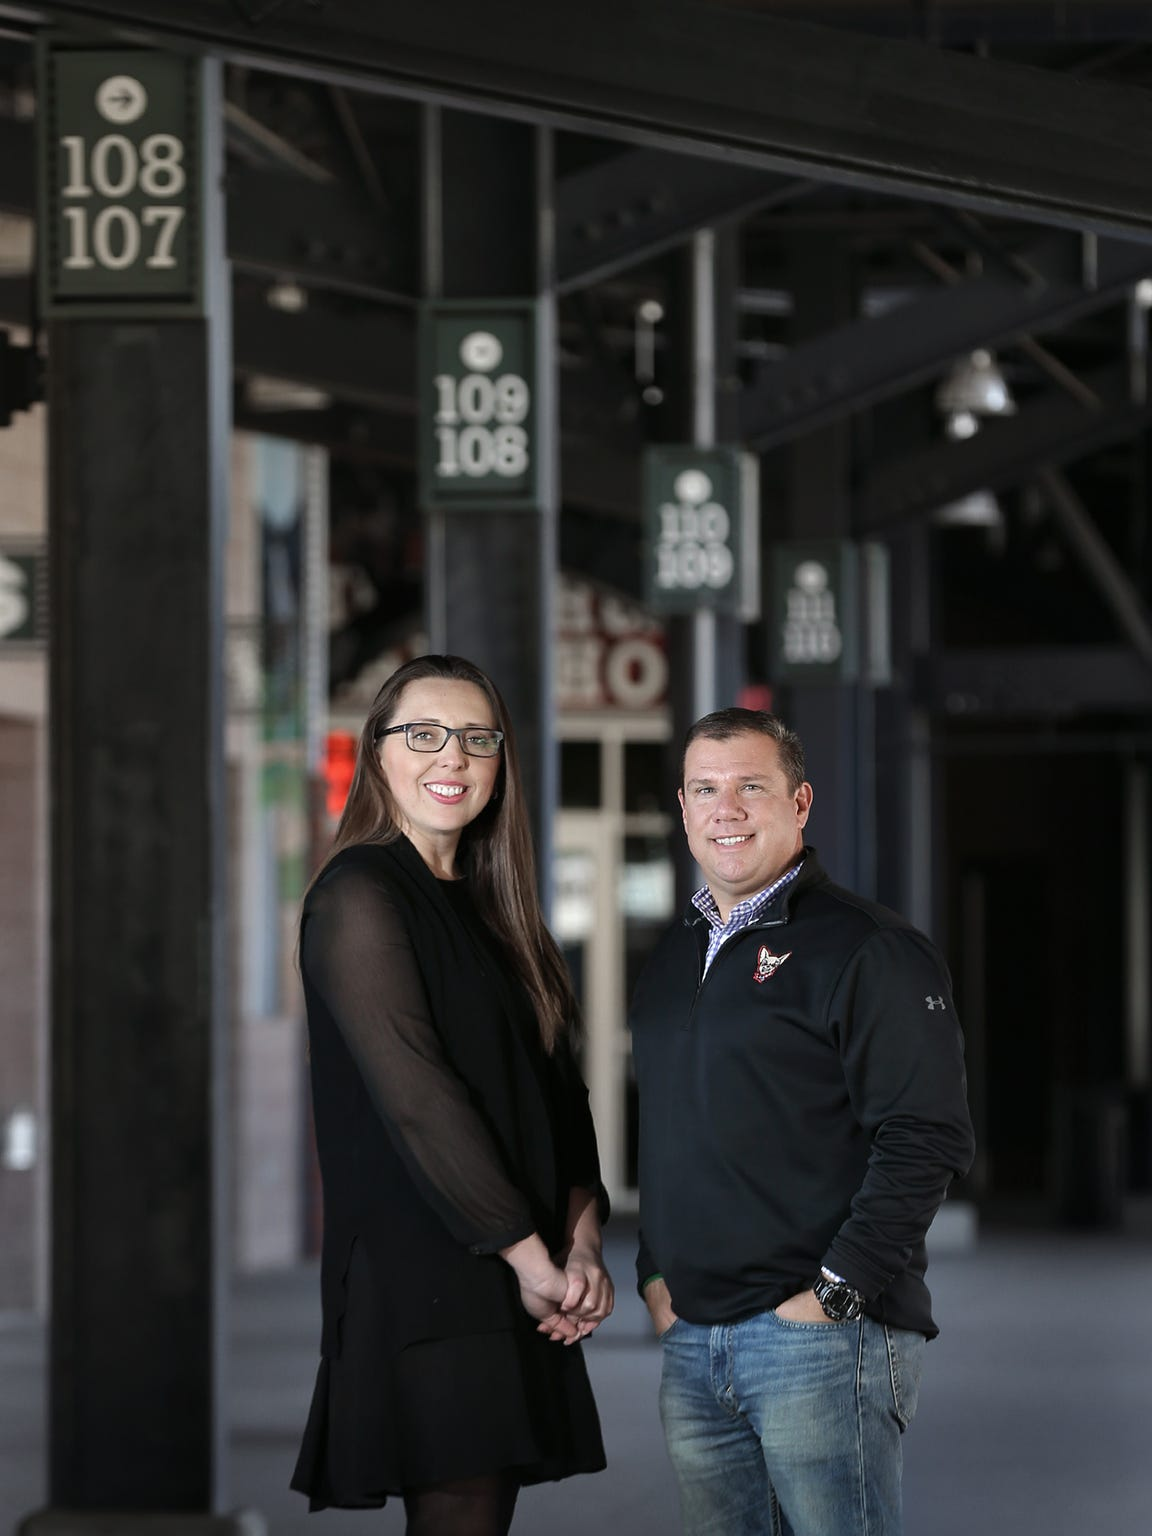 City of El Paso Economic and International Develpment Director Jessica L. Herrera and Chihuahuas Vice President and General Manager Brad Taylor are using the ballpark as a tool to attract economic development to the area.